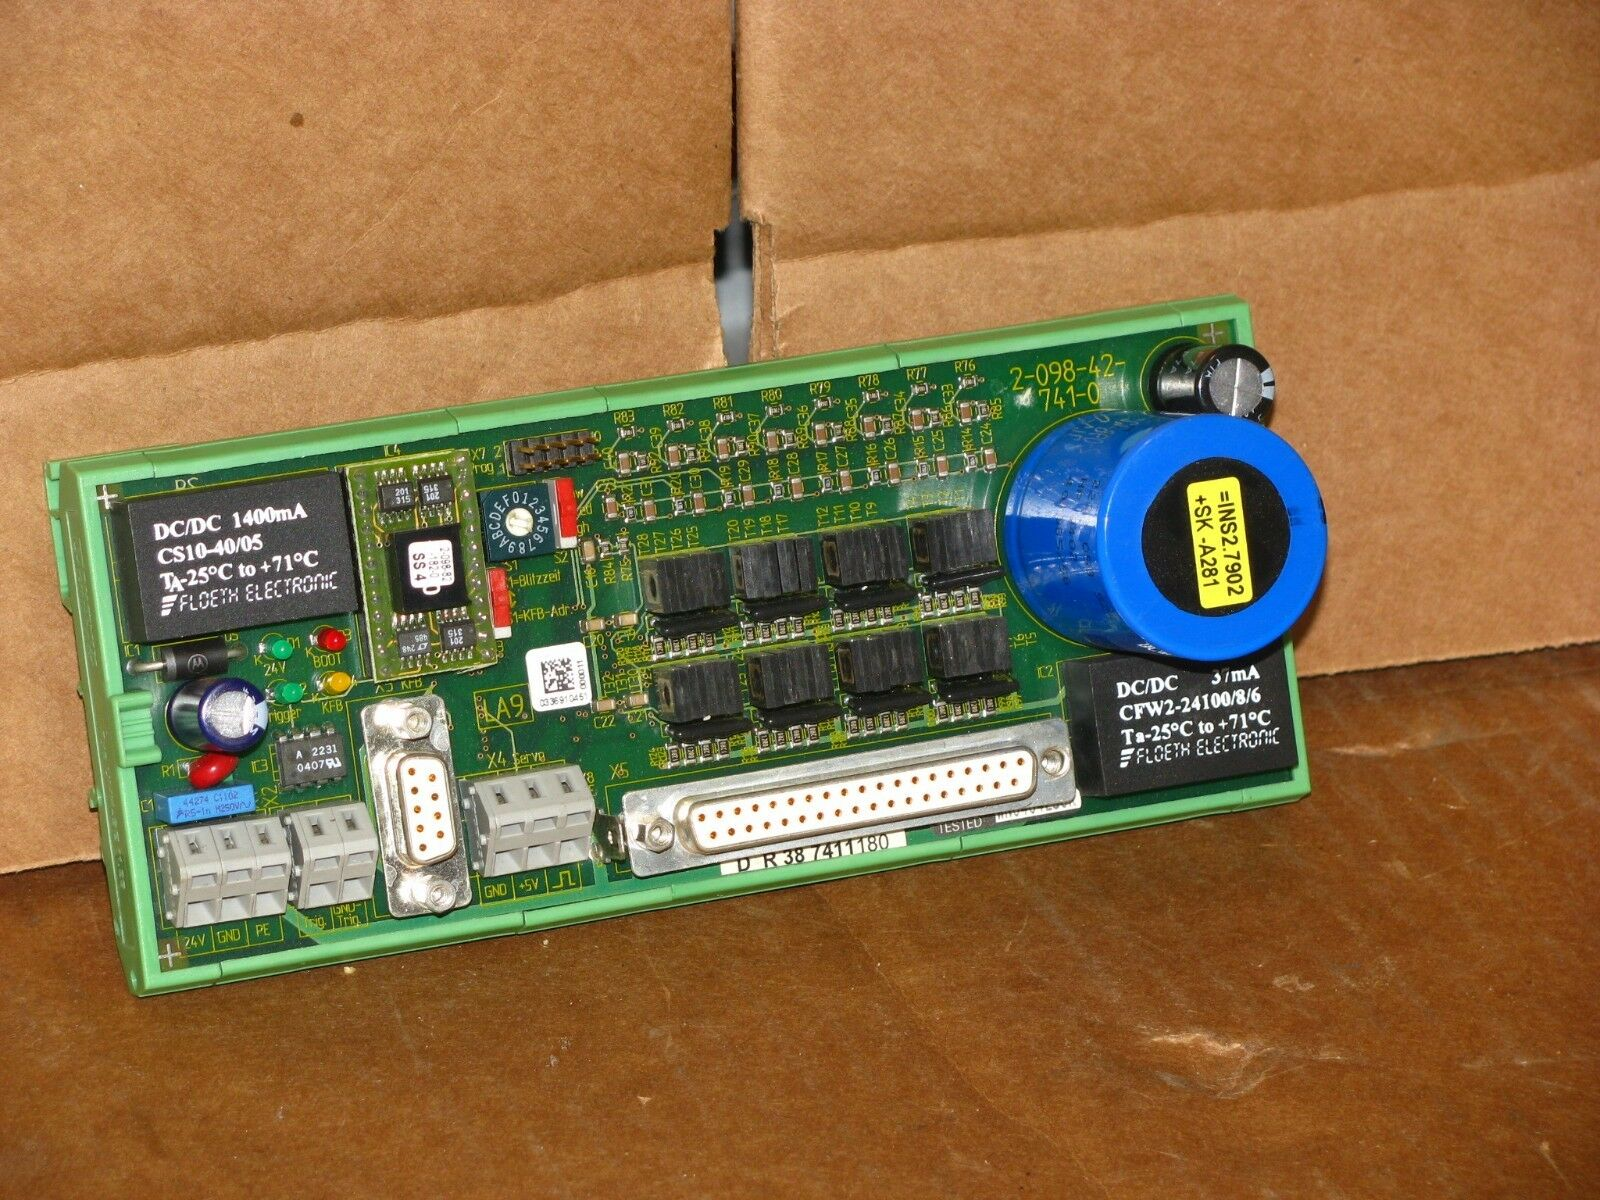 Krones 2 098 42 741 0 Circuit Board 26550 Picclick 741circuit1 1 Of 3only Available